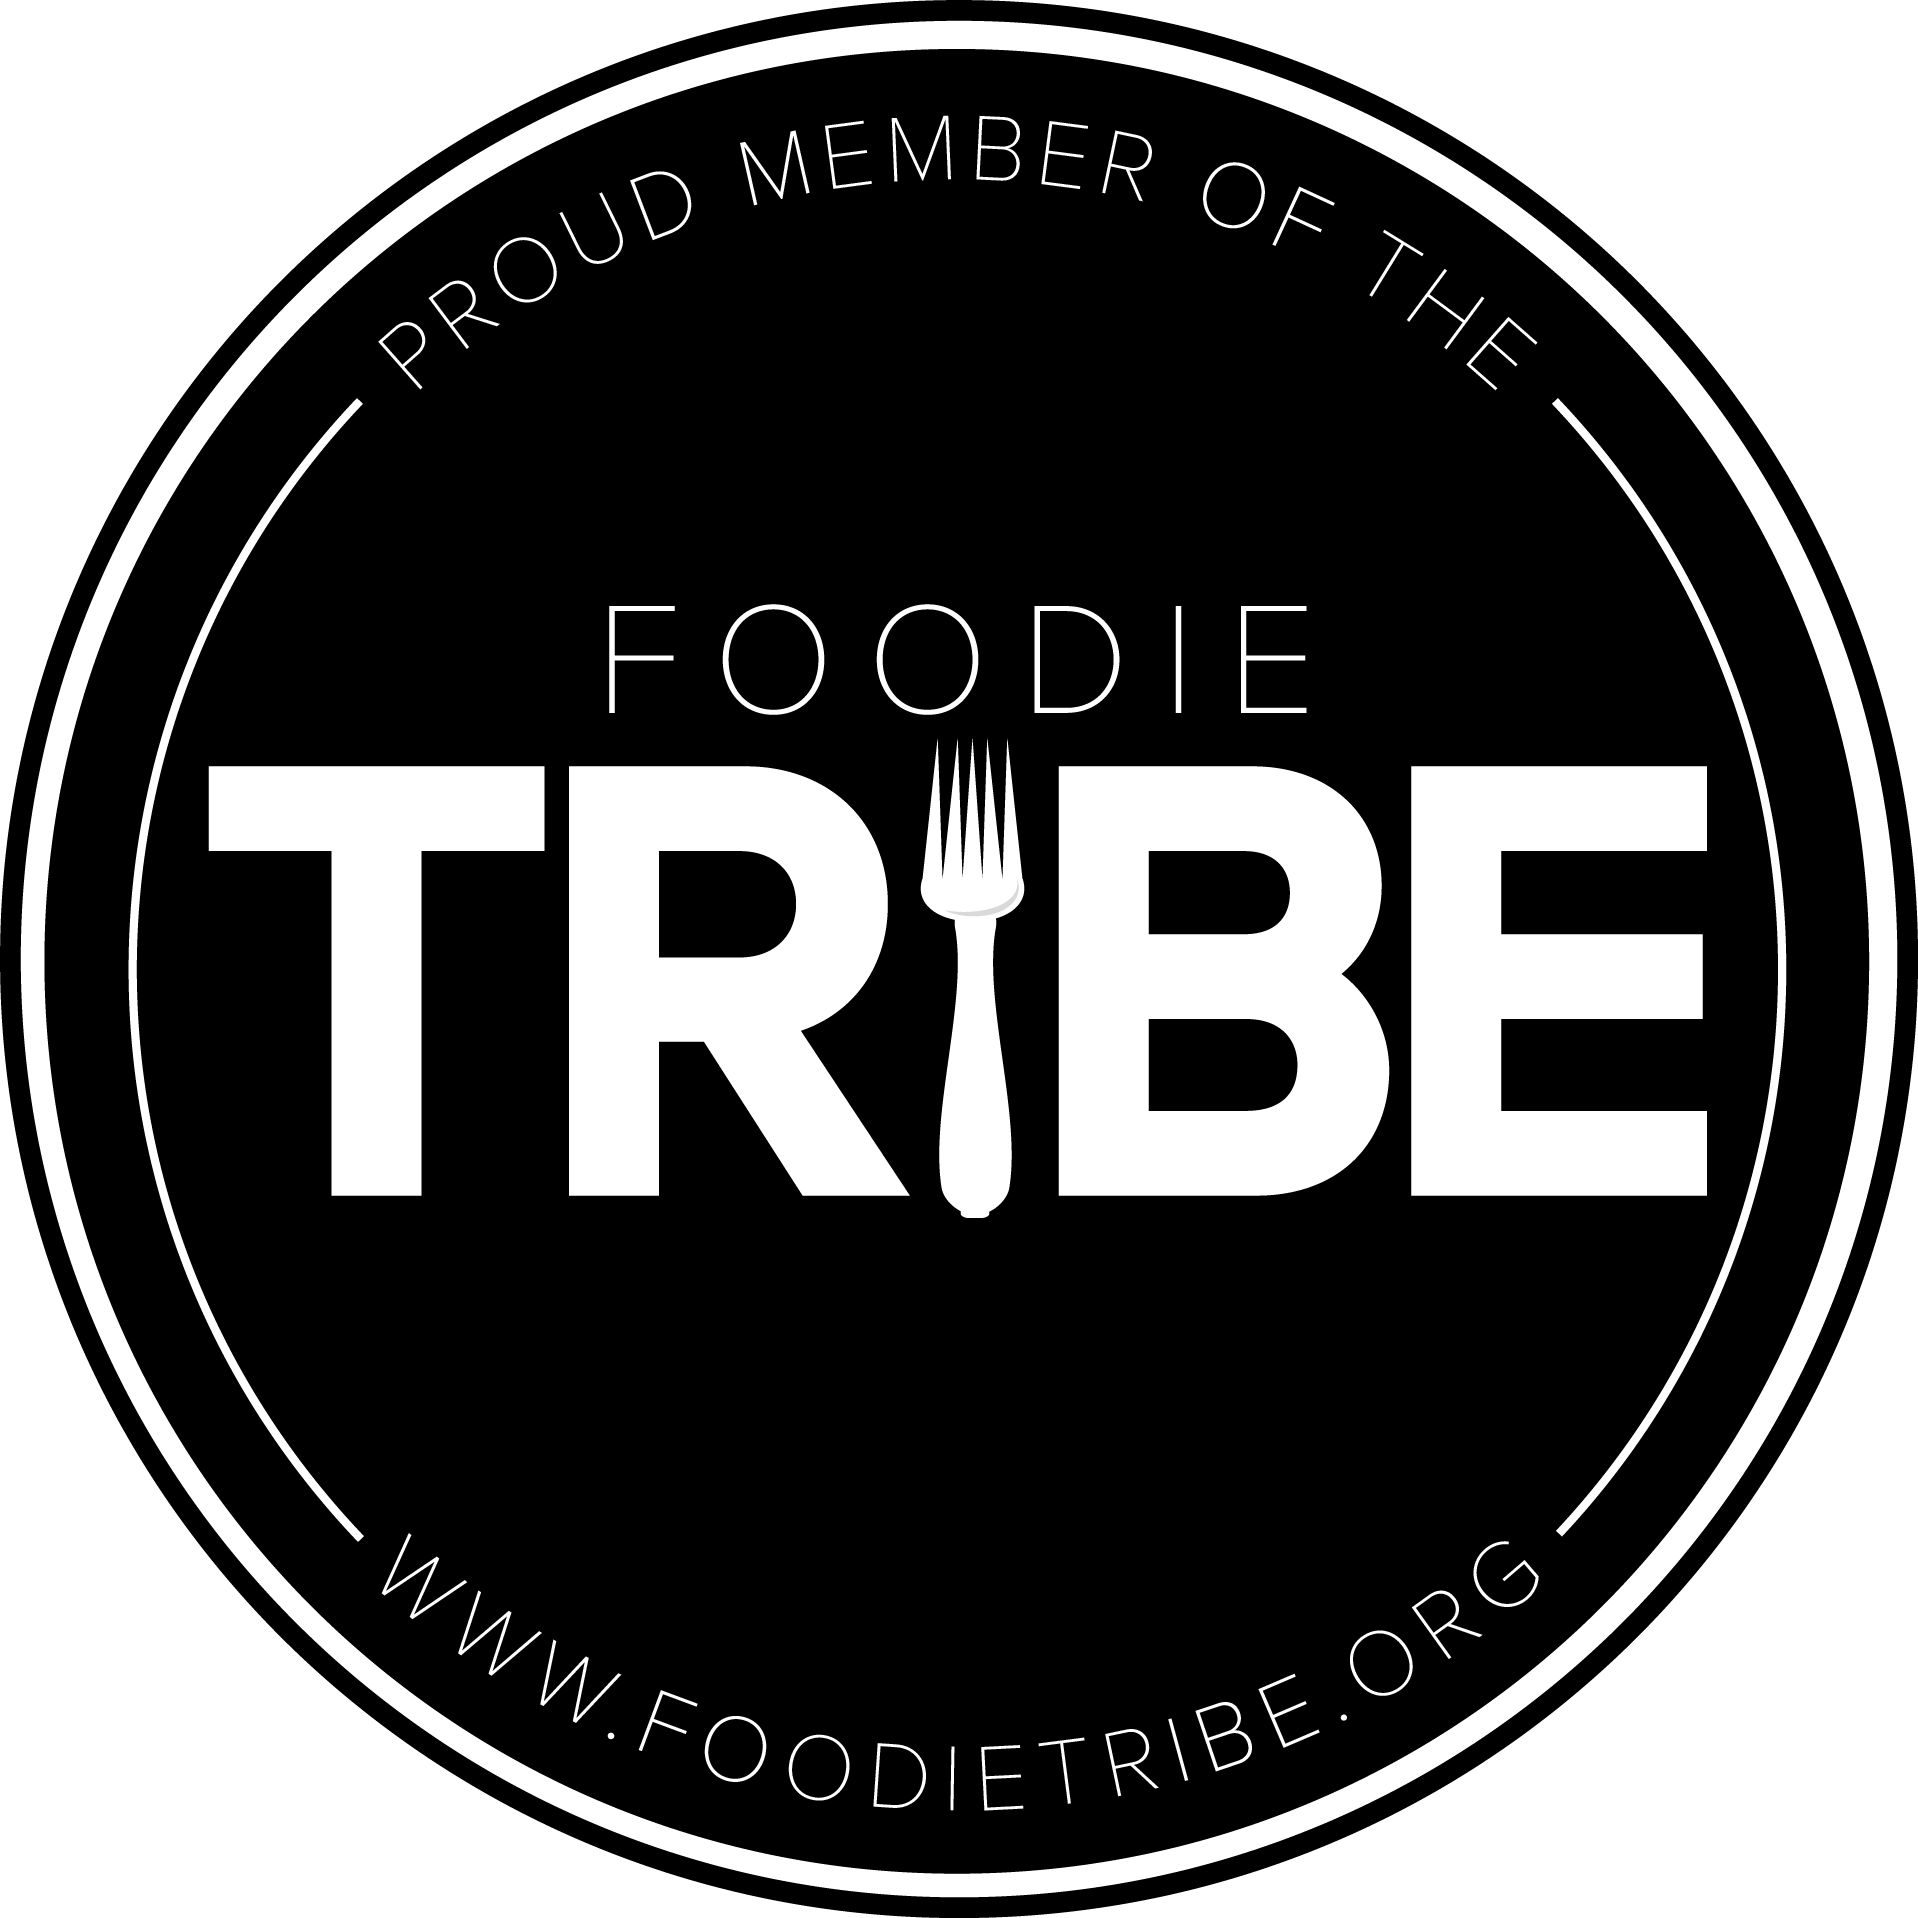 Member of the Foodie Tribe | HDYTI